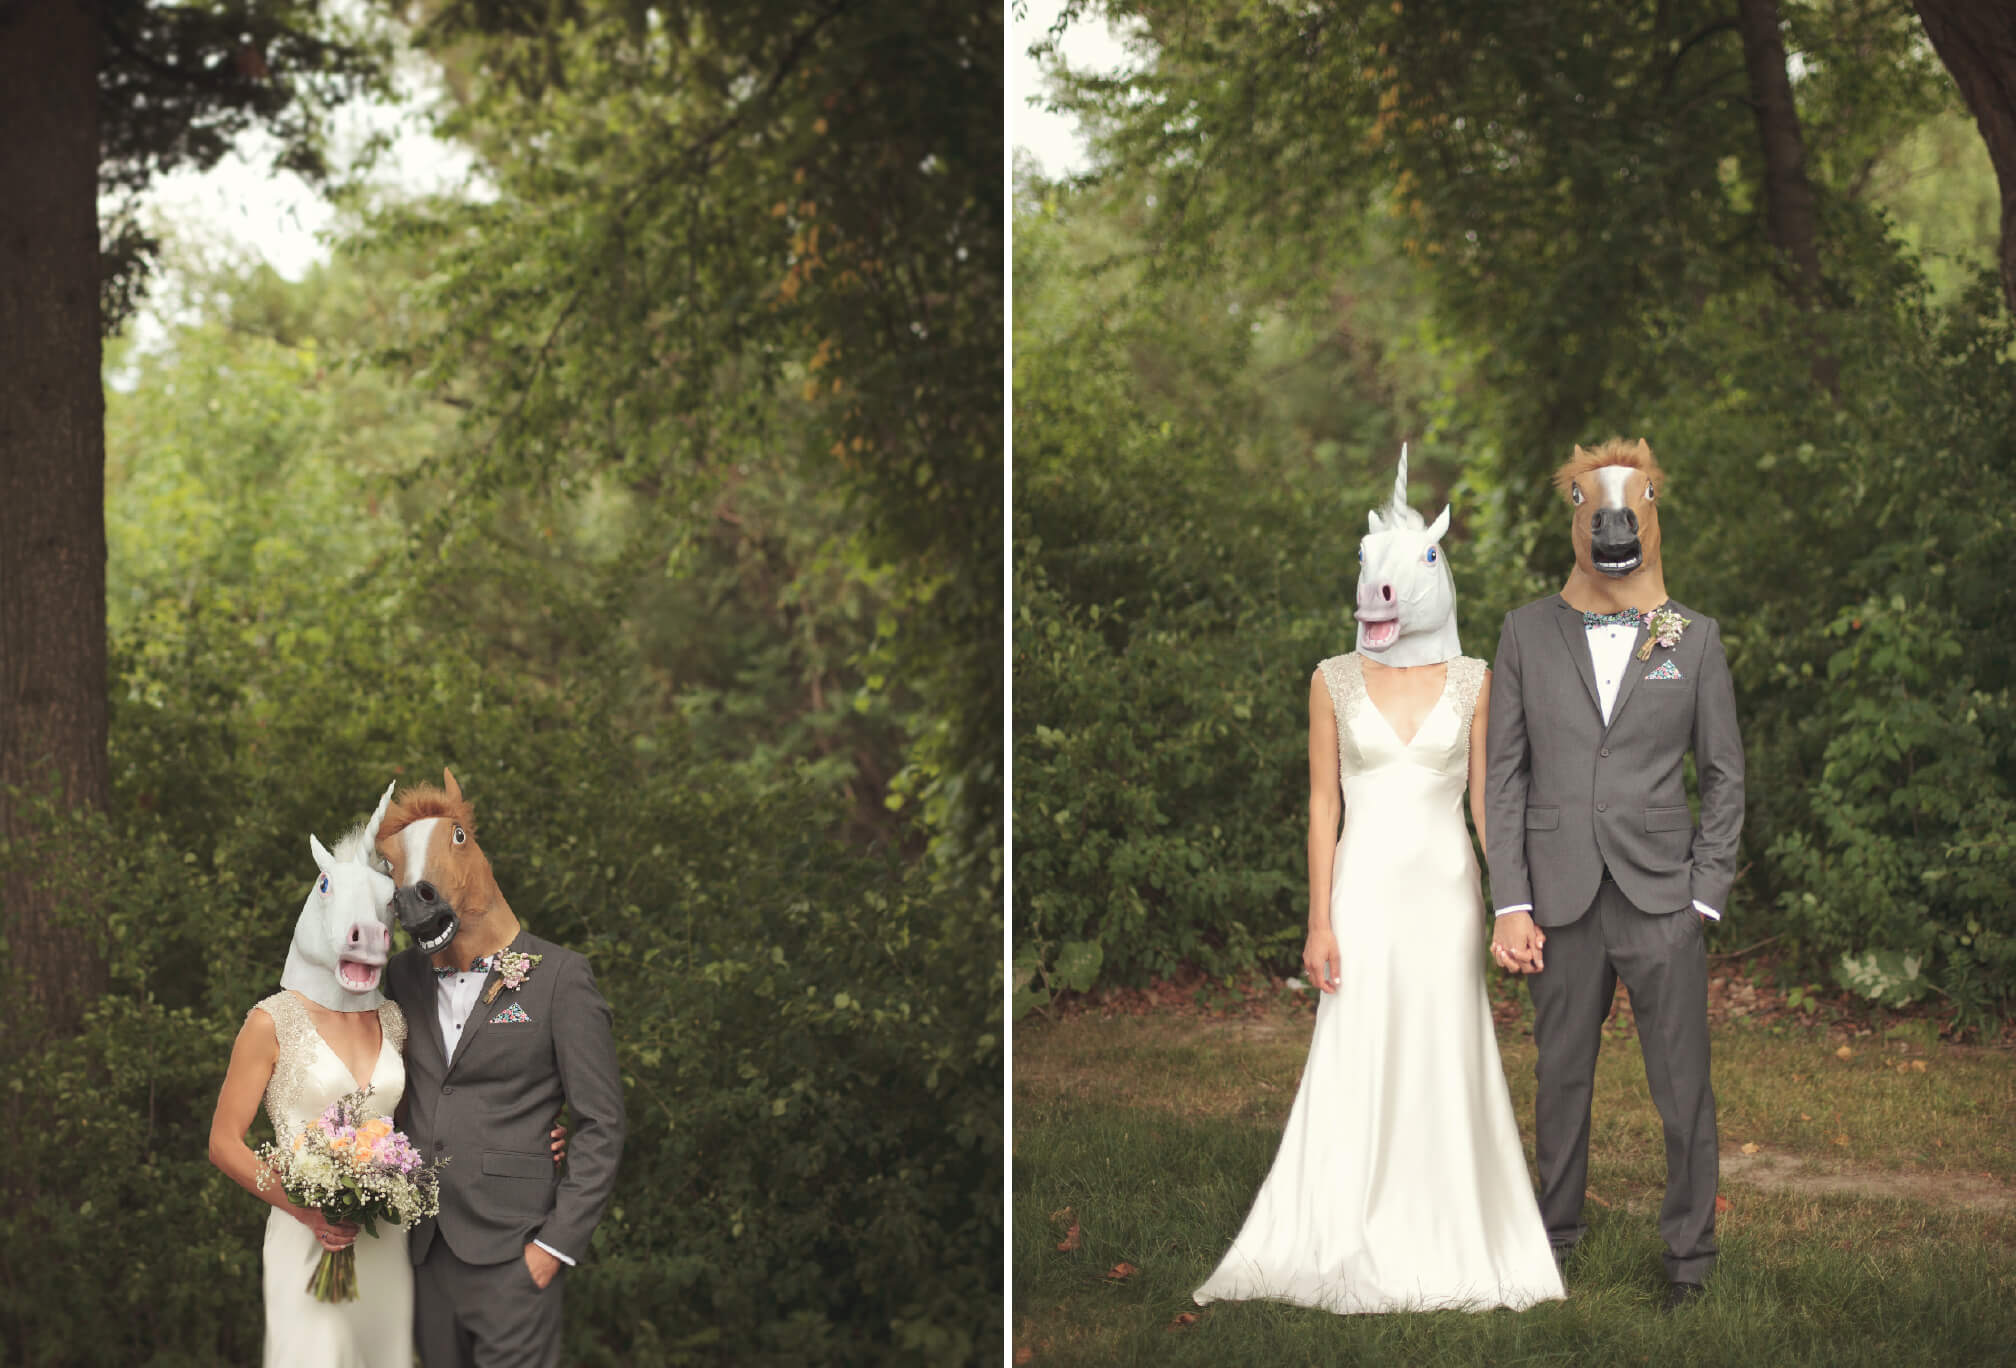 bride and groom funny masks wedding photography